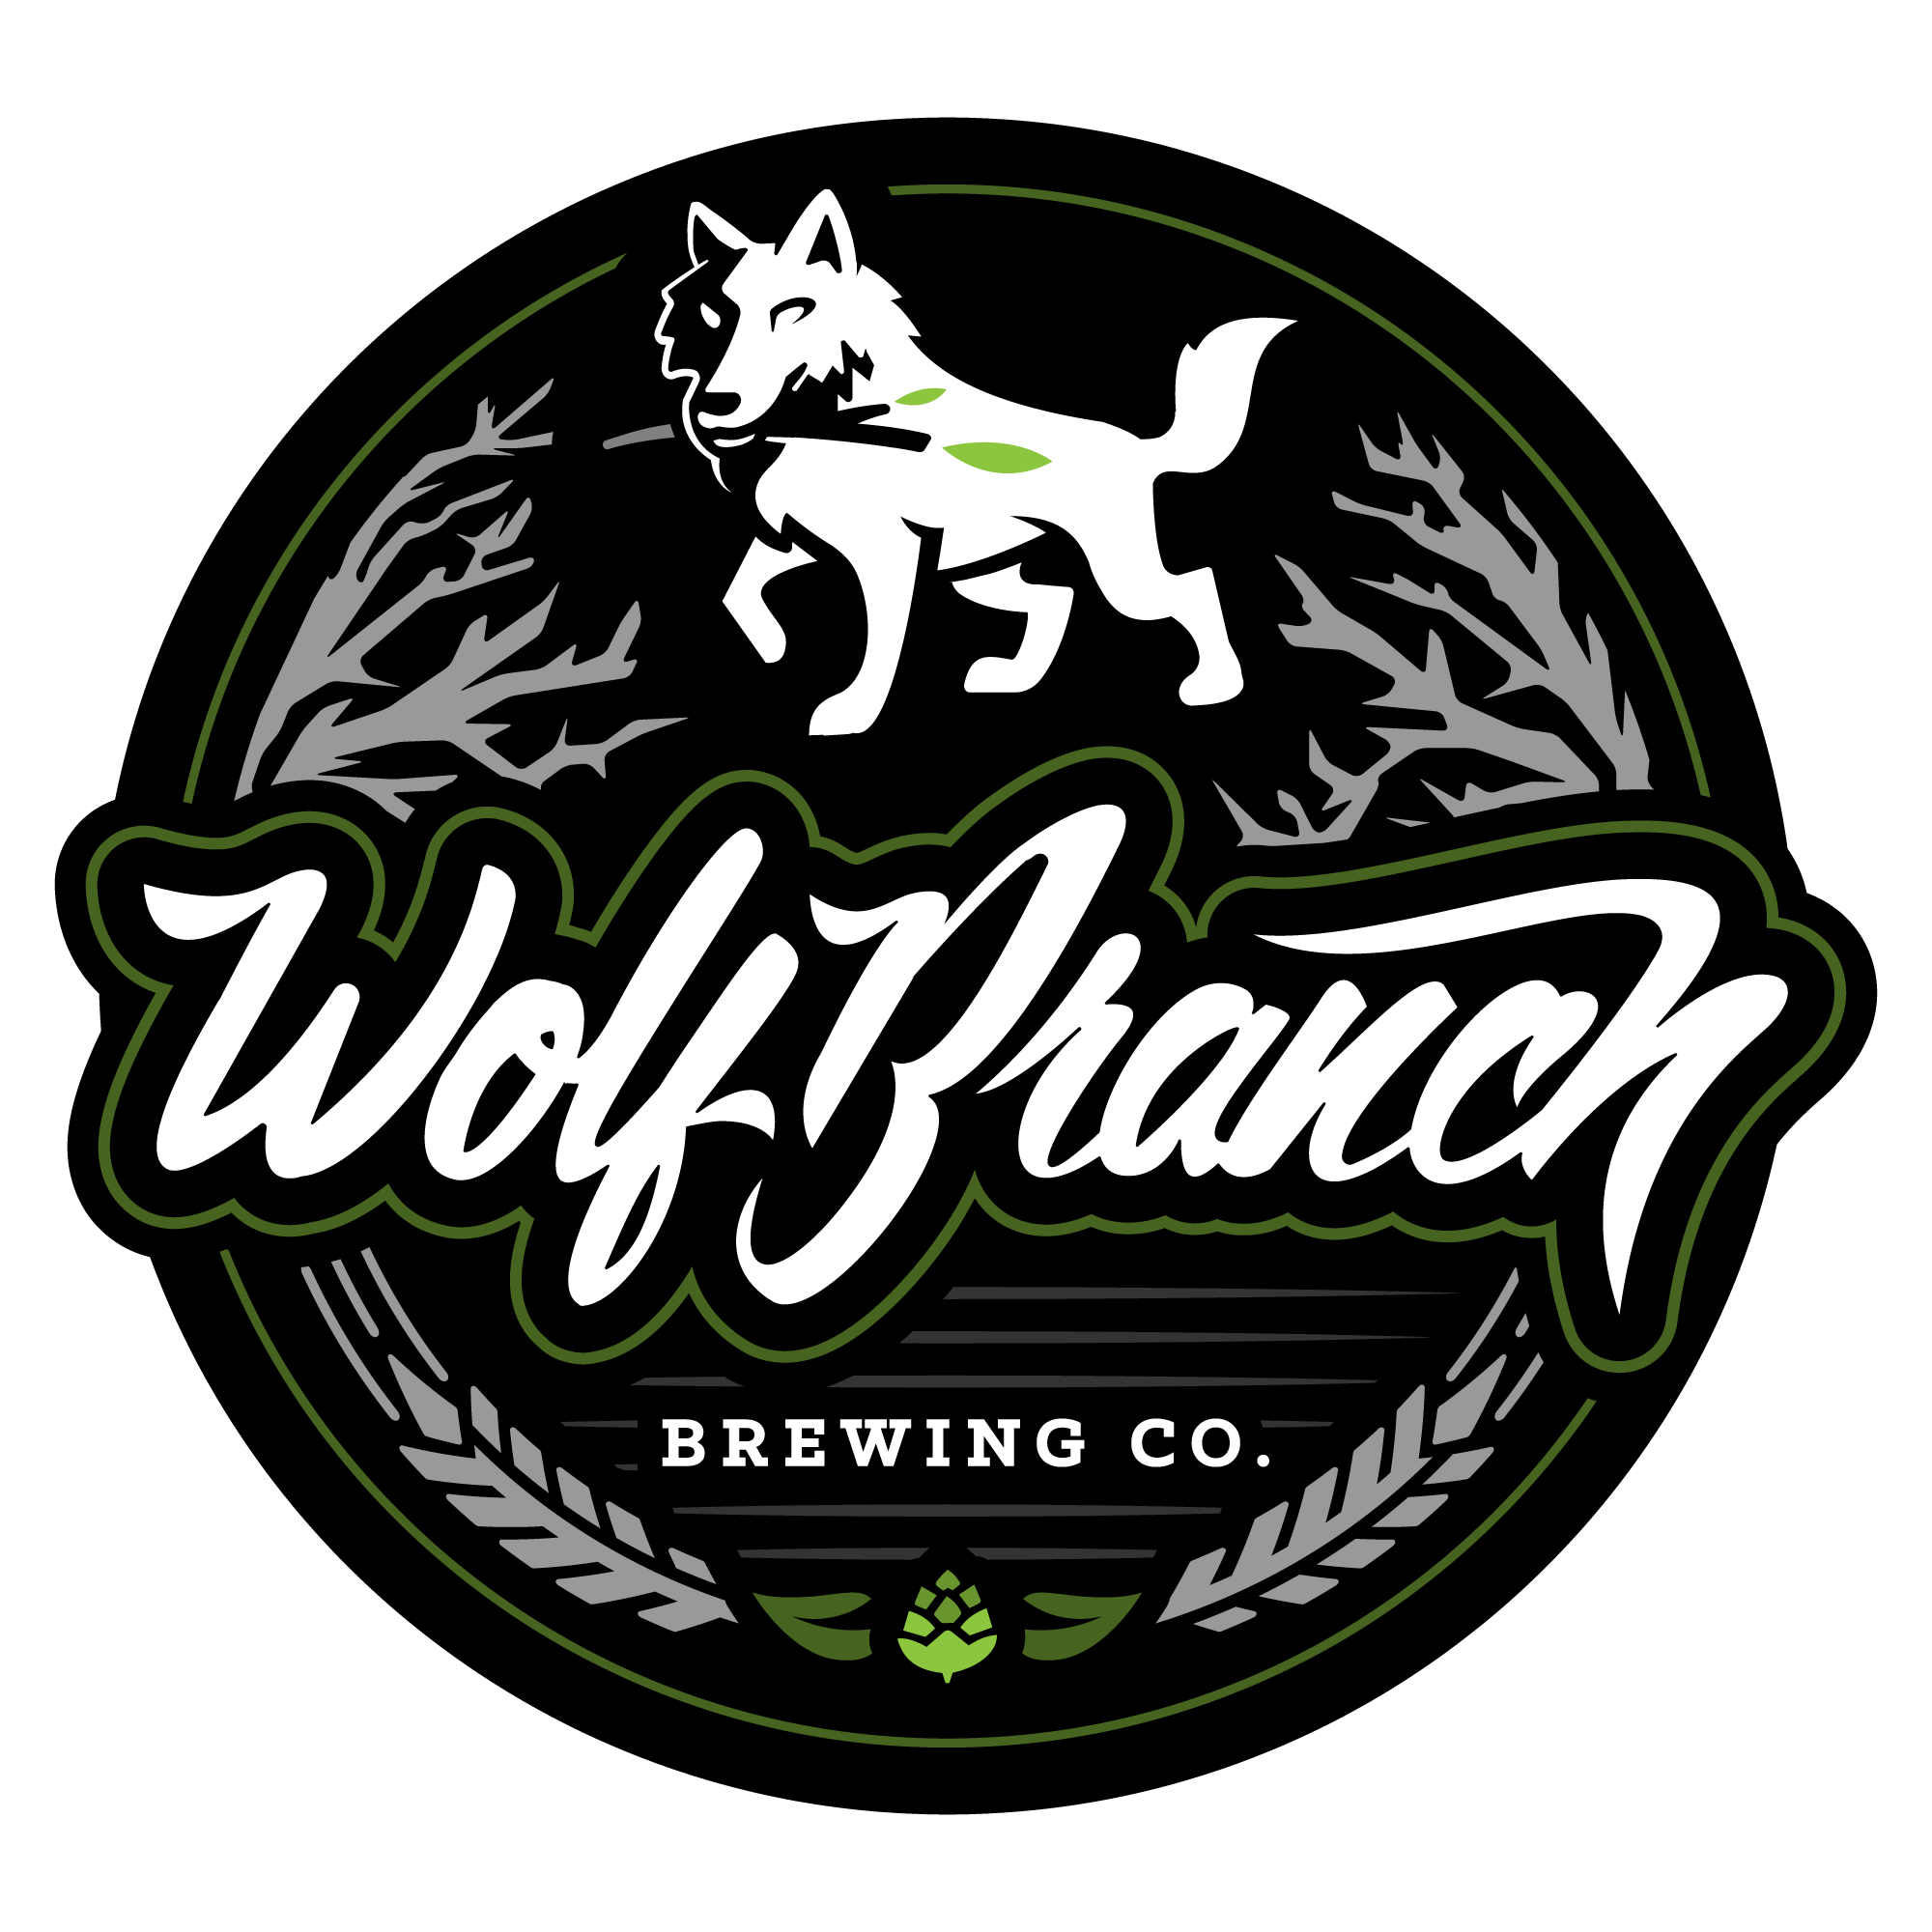 Wolf Branch Brewing image 5